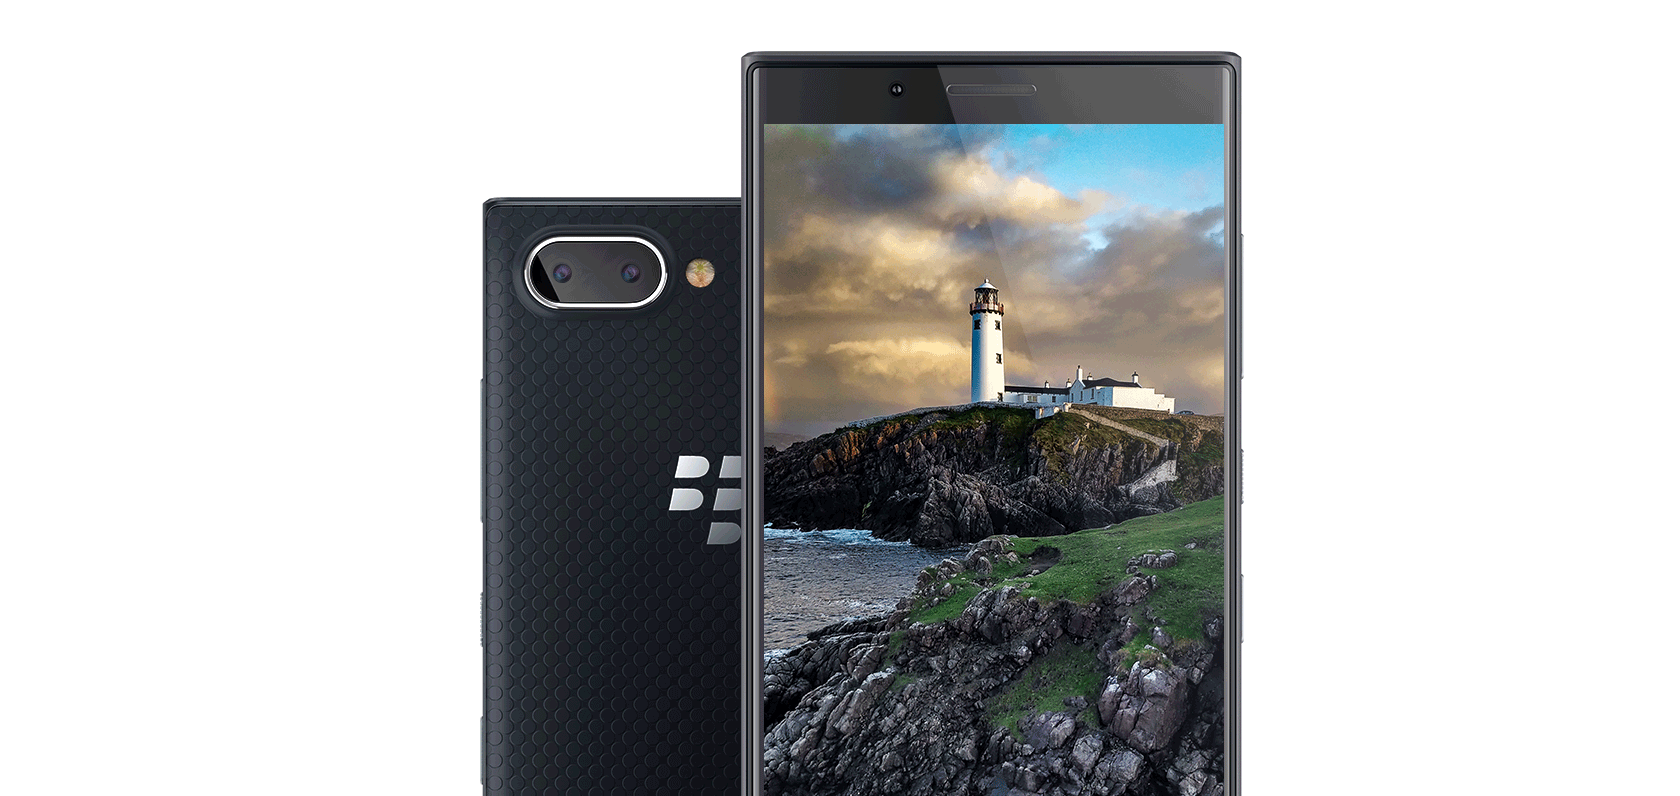 dualcamera2 - BlackBerry KEY2 LE